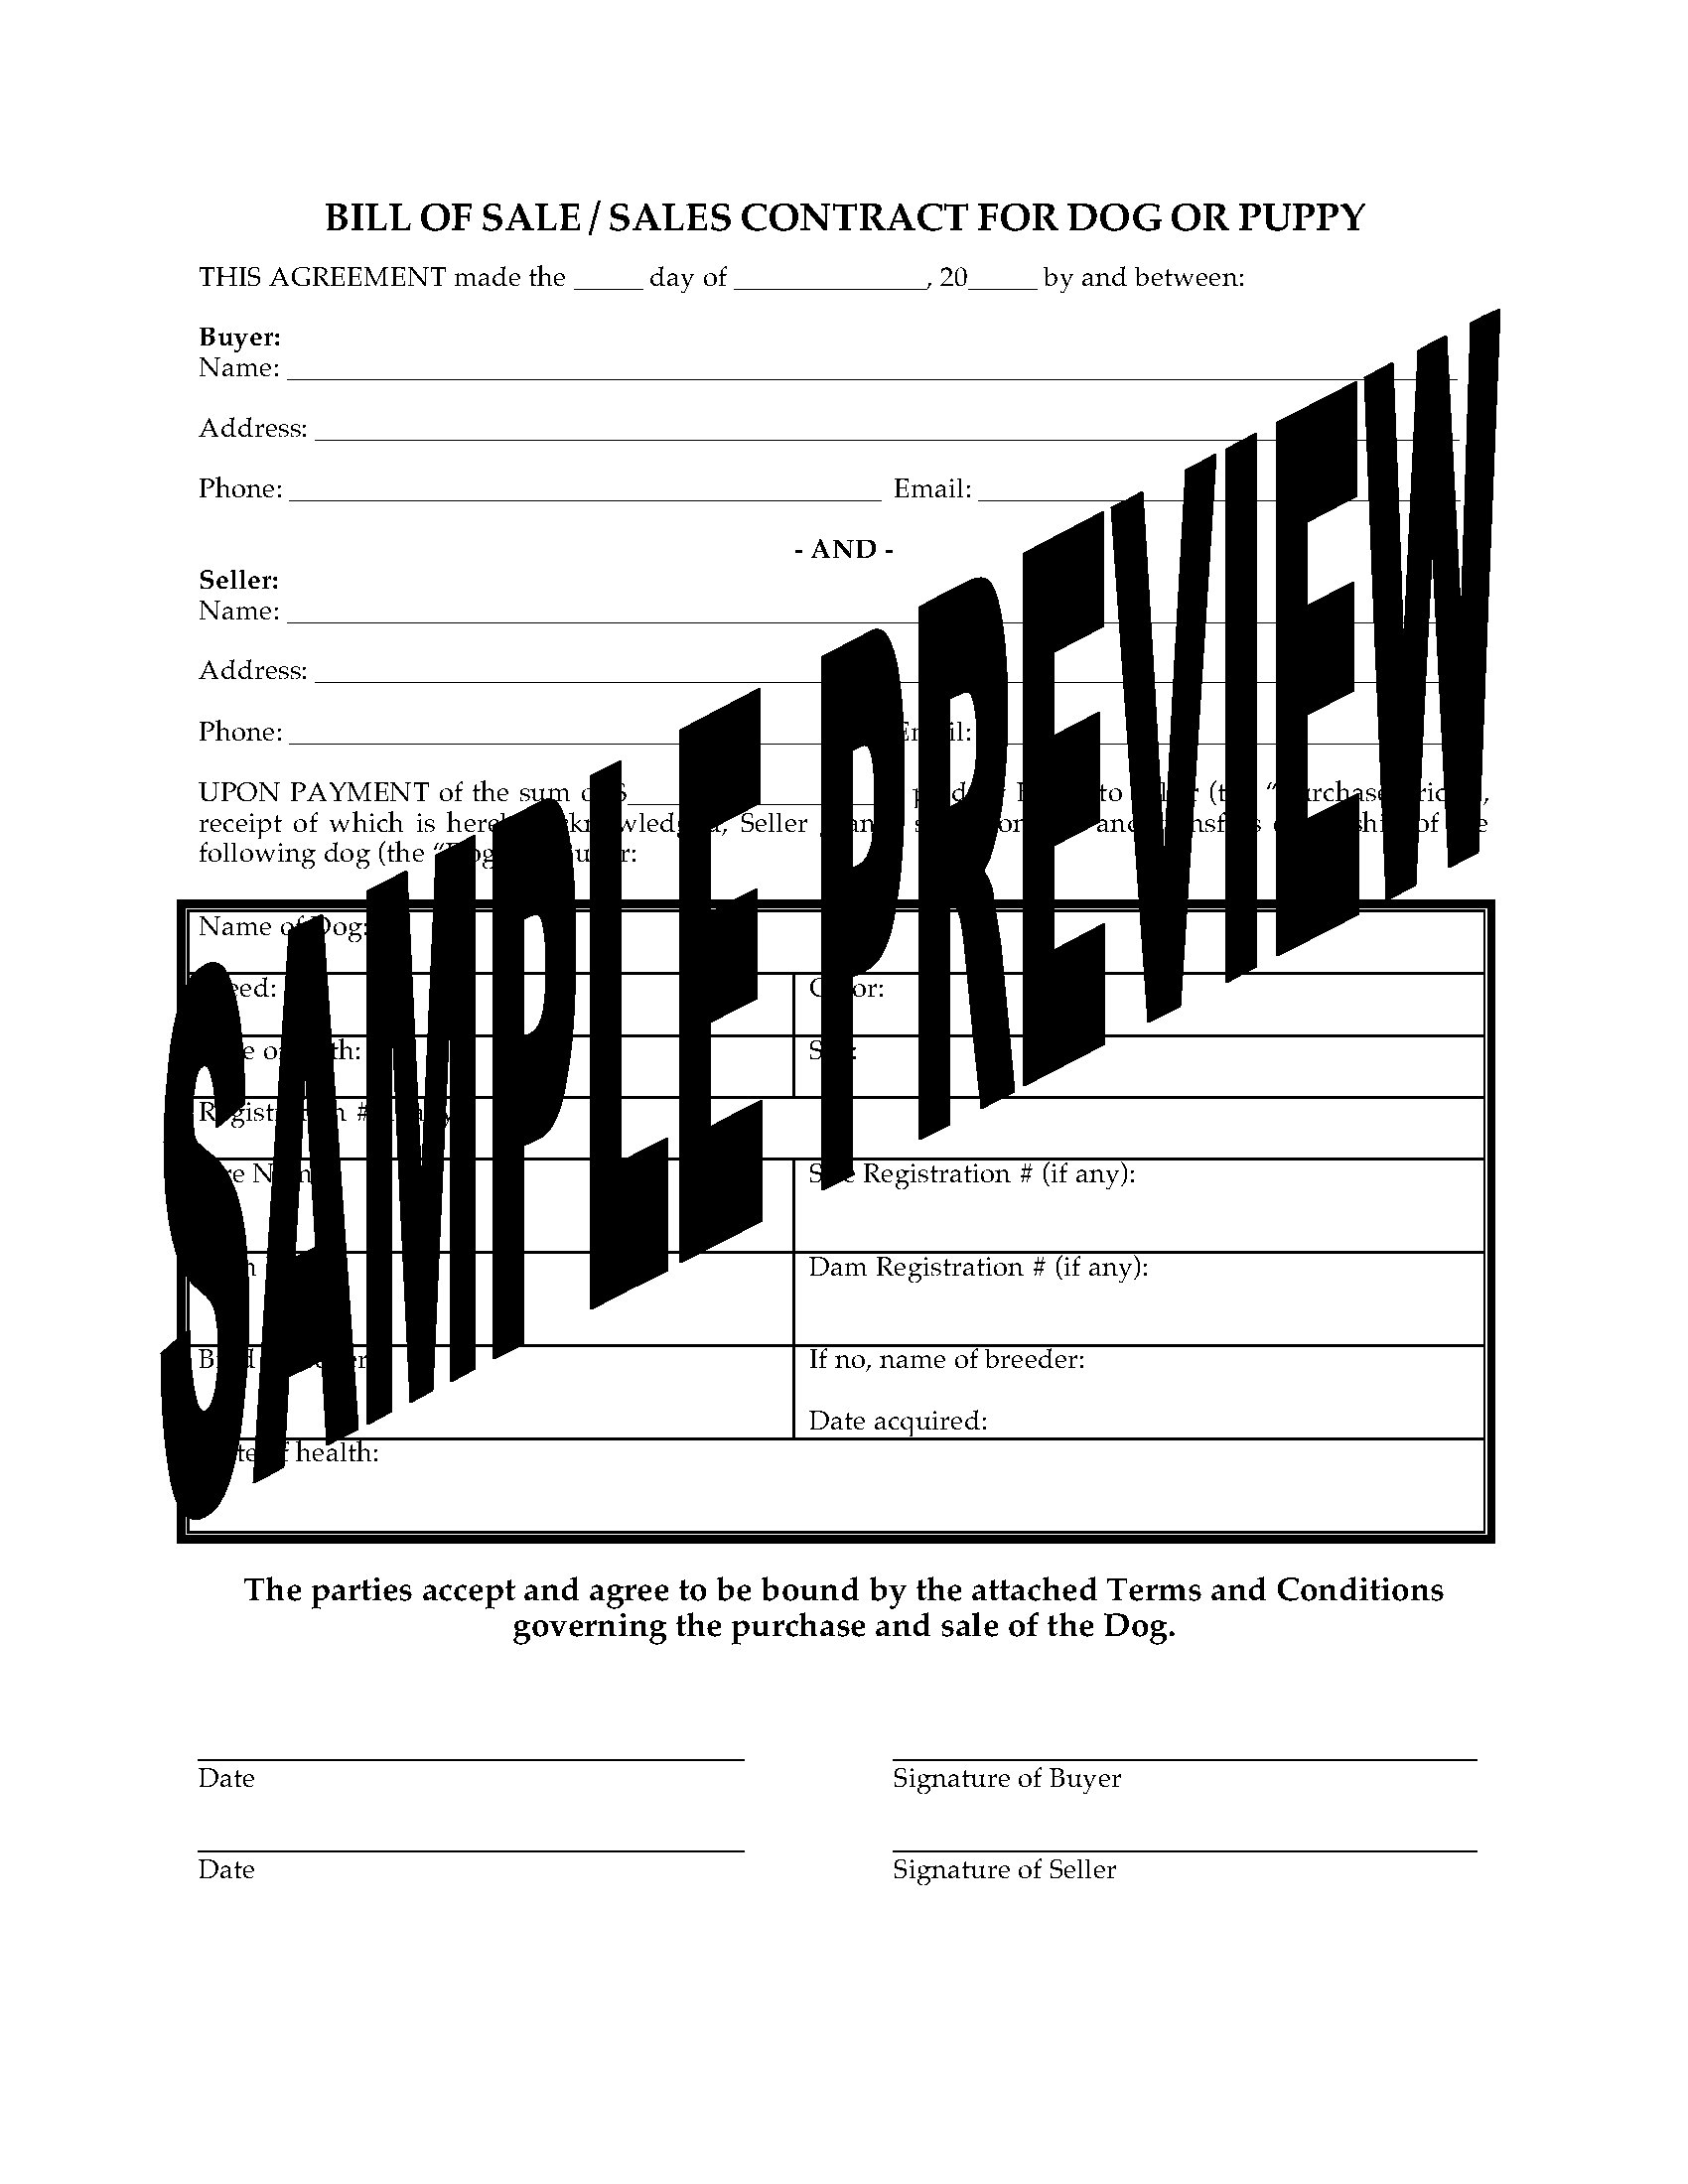 Bill Of Sale Form For Dog Or Puppy Legal Forms And Business Templates Megadox Com